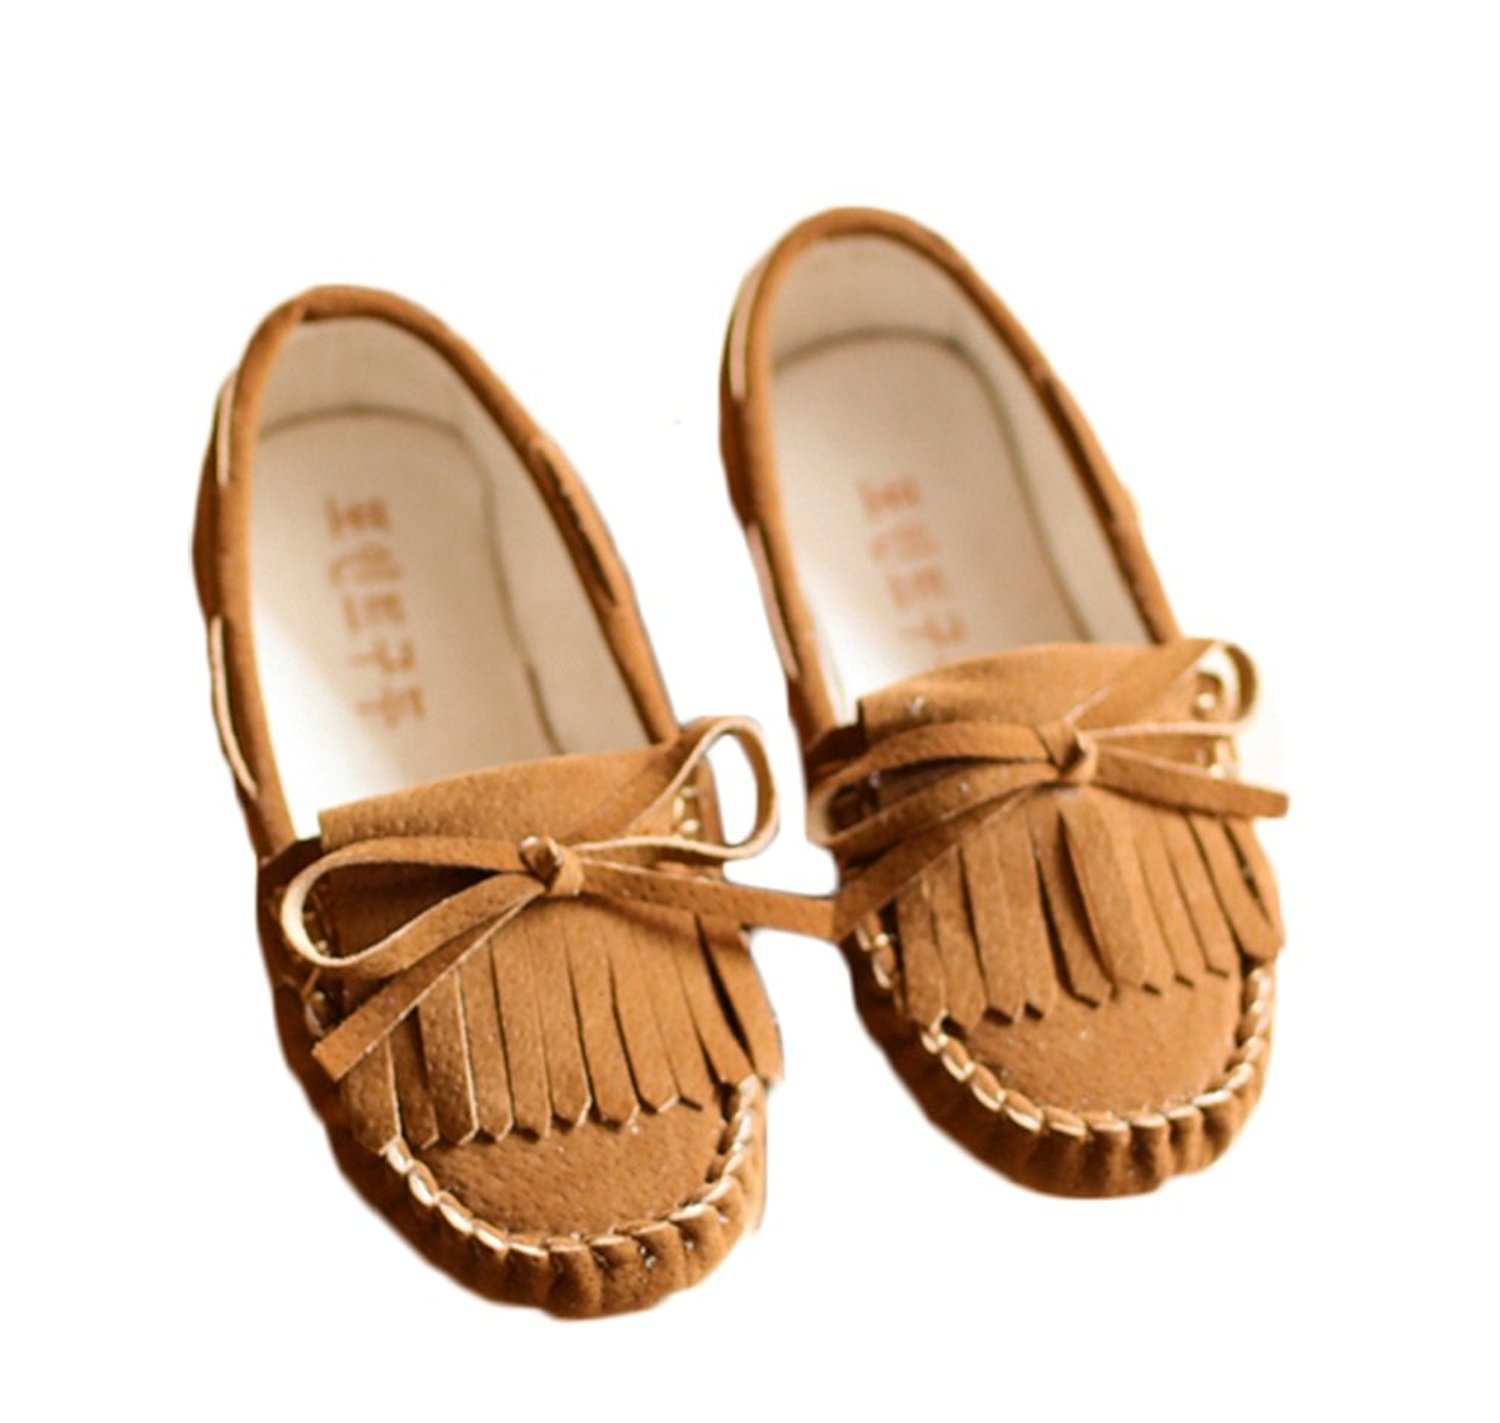 Bakerdani 2017 Style Fashion Autumn Girls Princess Casual Shoes with Tassels